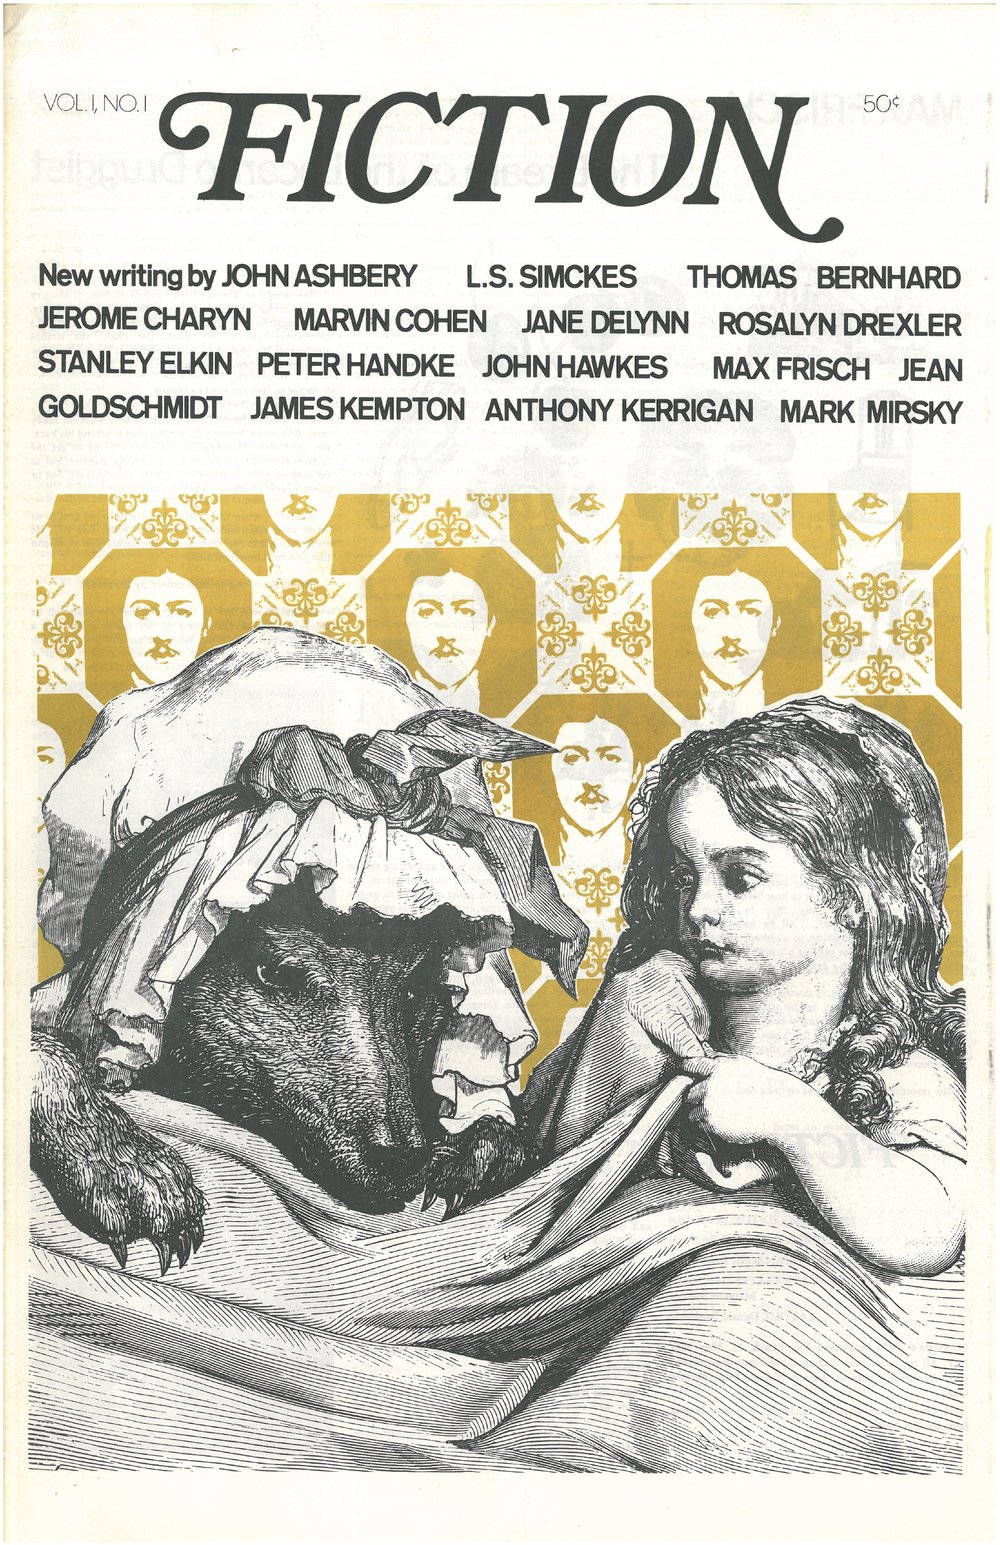 Fiction 's first issue, vol. 1 no. 1, 1972.